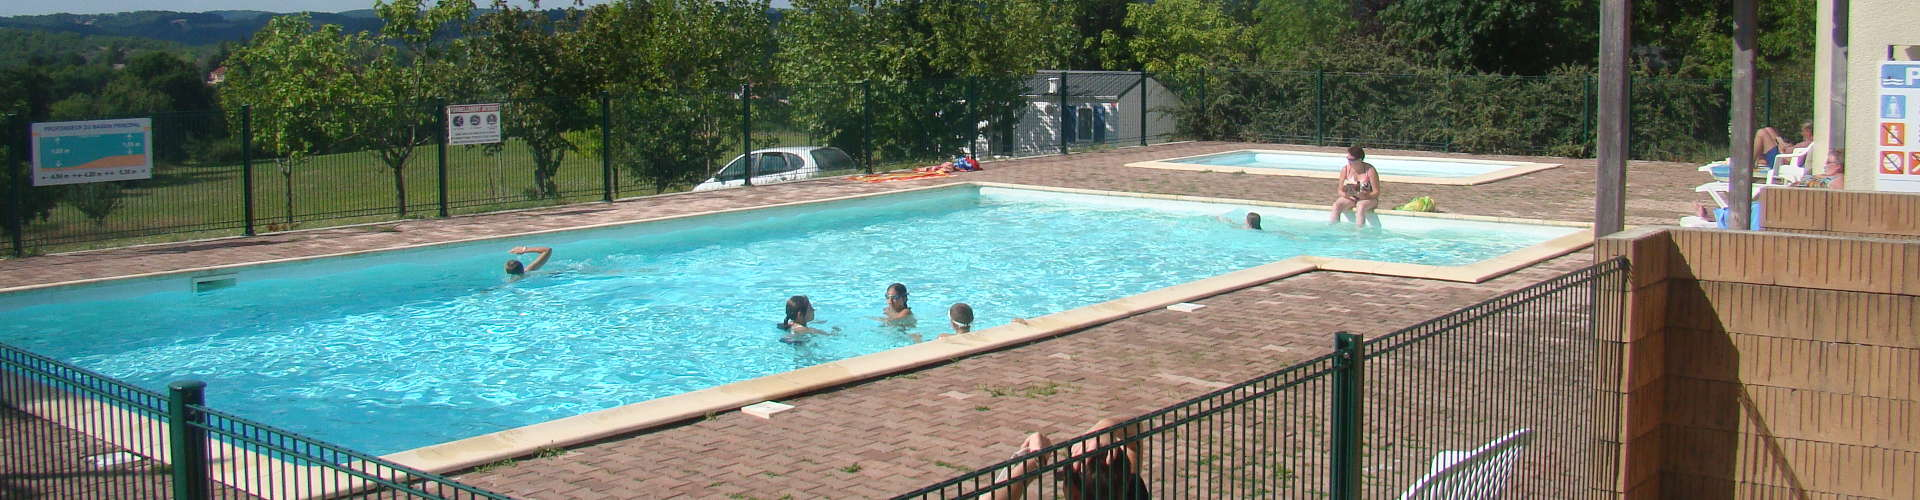 Camping les graves accueil for Camping cahors piscine